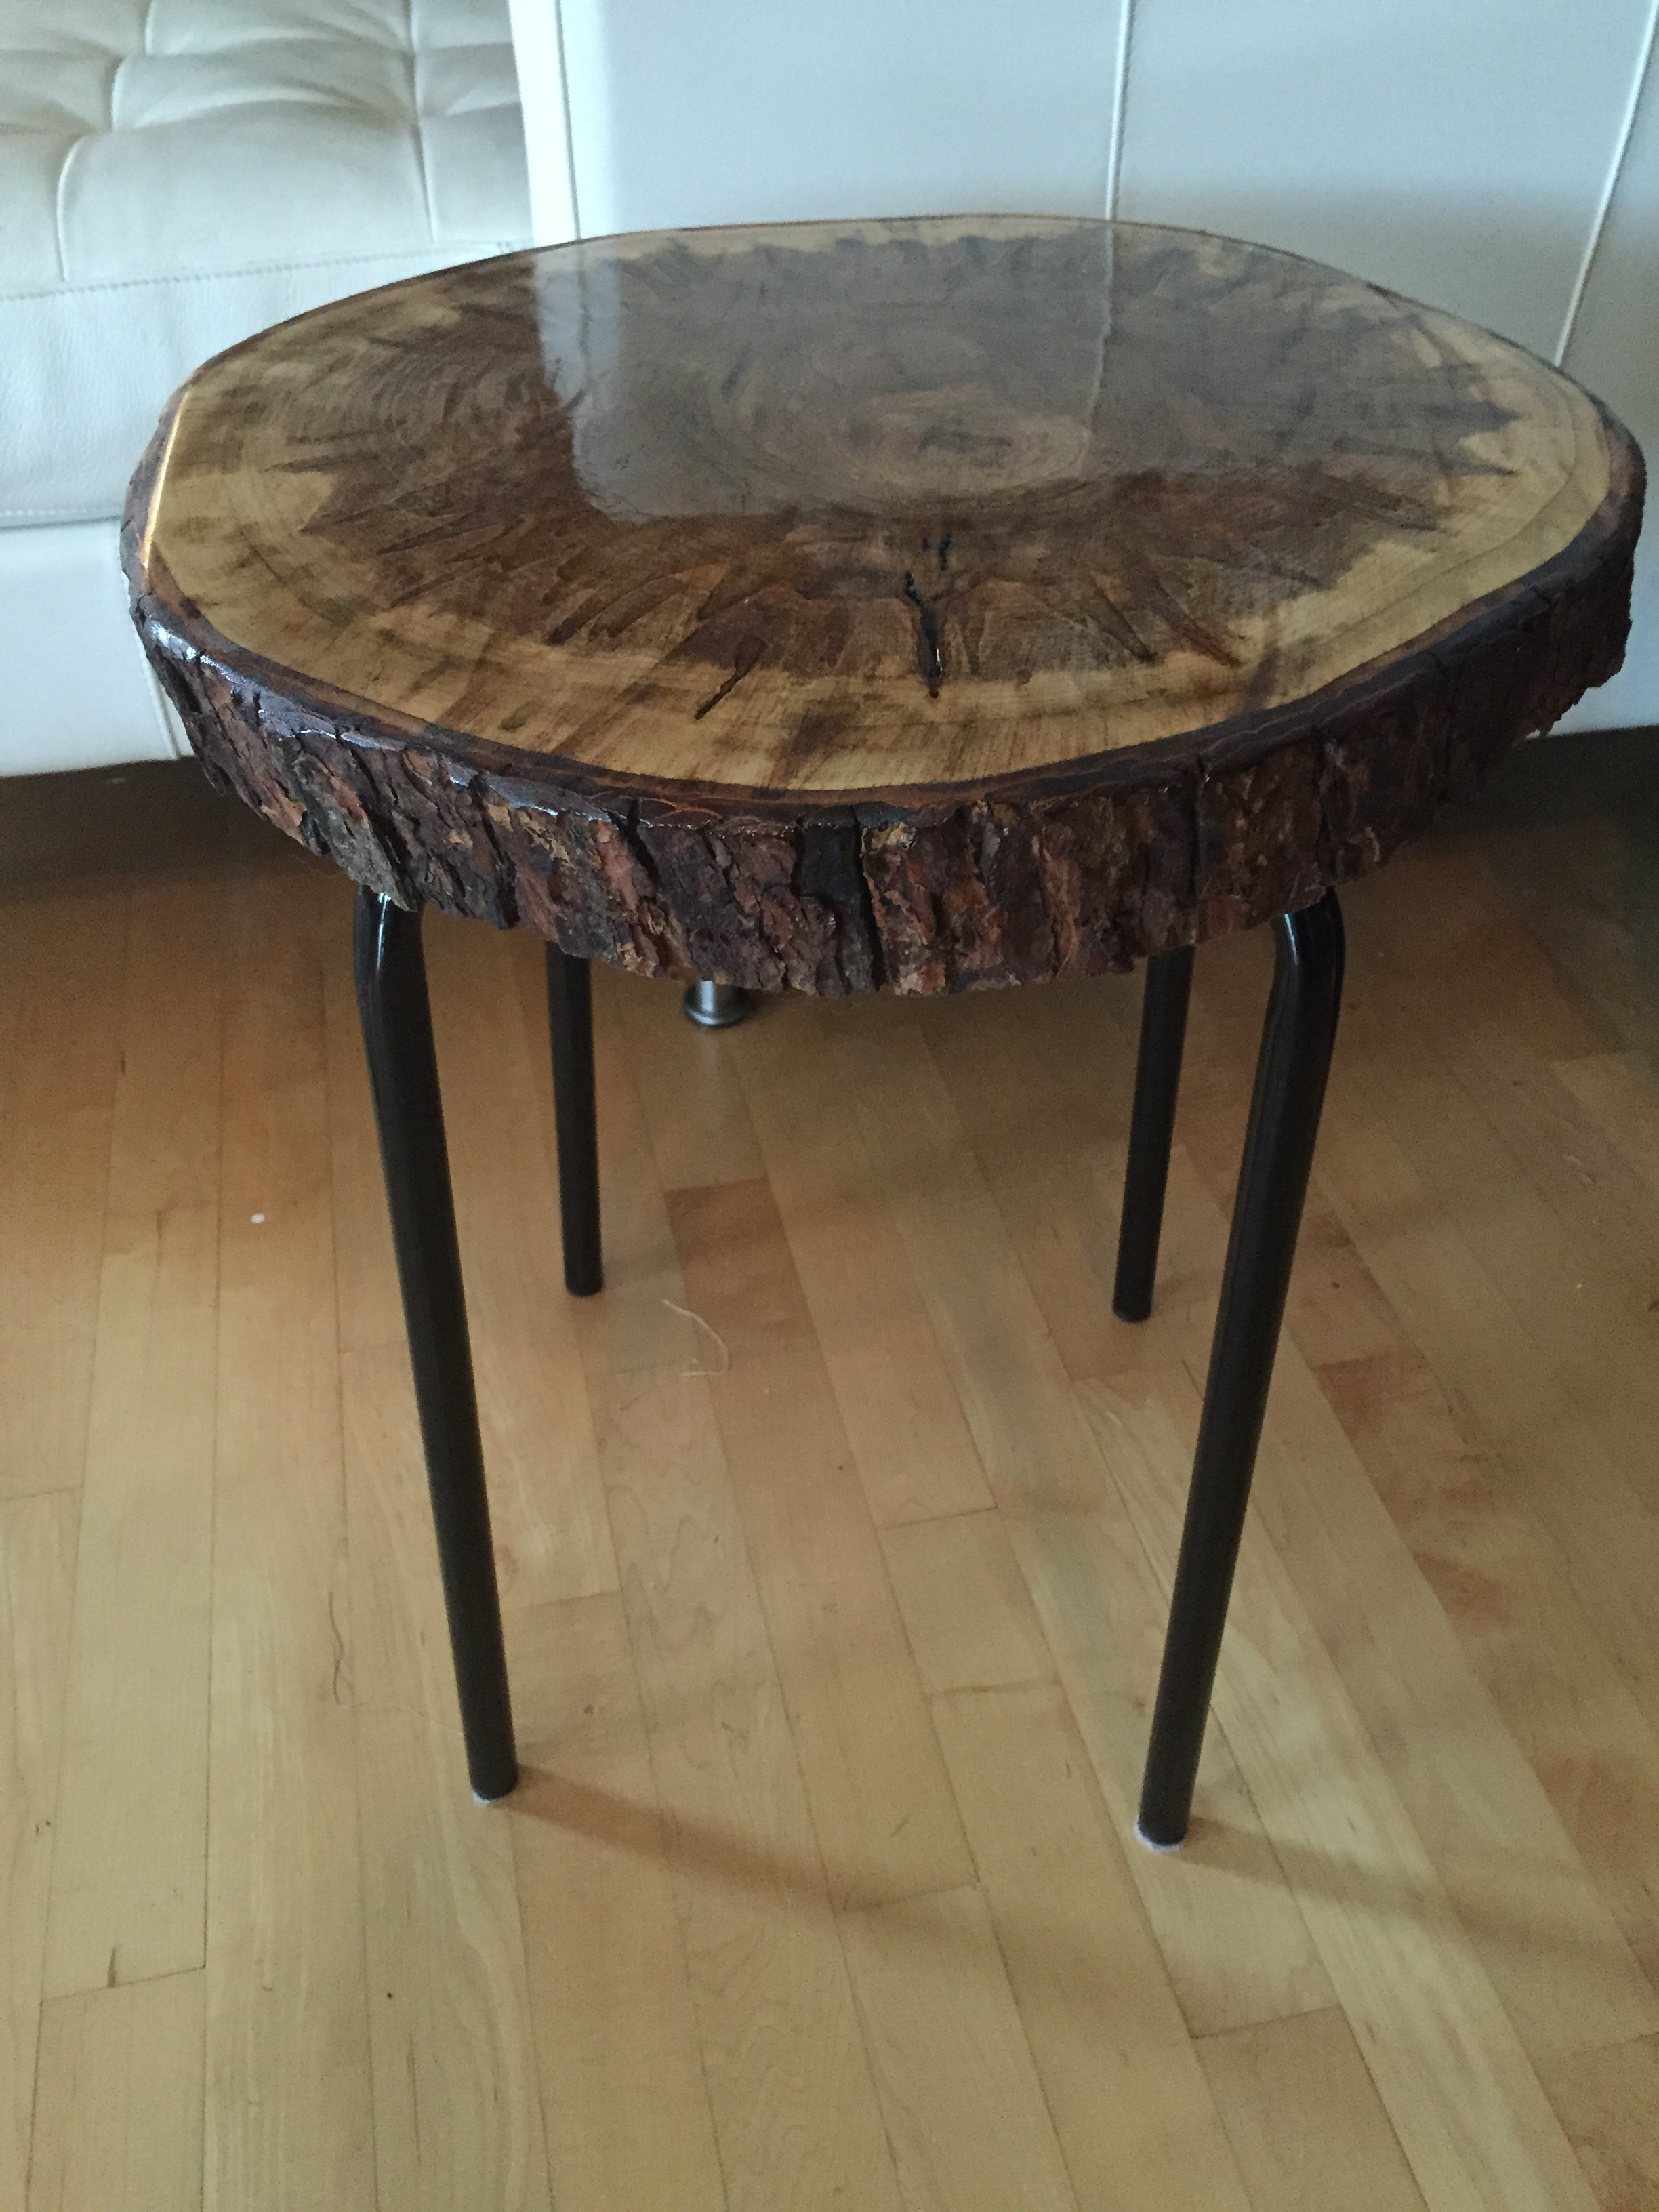 ikea black coffee table with glass top probably perfect live round wood side end stump metal legs log edge living room that lifts wooden pet cage vintage formica half circle lane